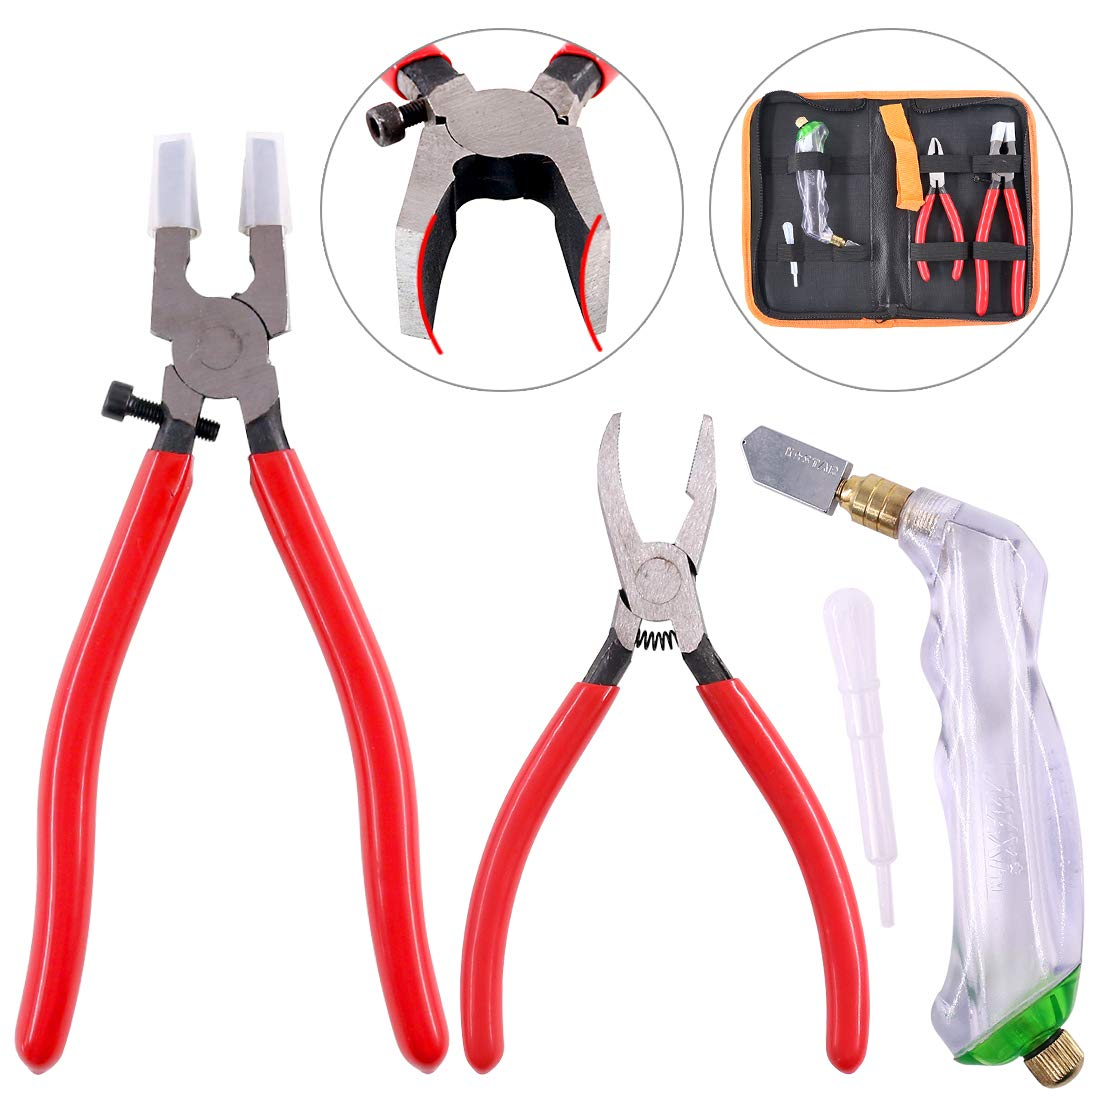 Hilitchi 3-Pcs Premium Glass Running Breaking Pliers and Pistol Grip Cutter Set Glass Tool for Stained Glass, Mosaics and Fusing Work by Hilitchi